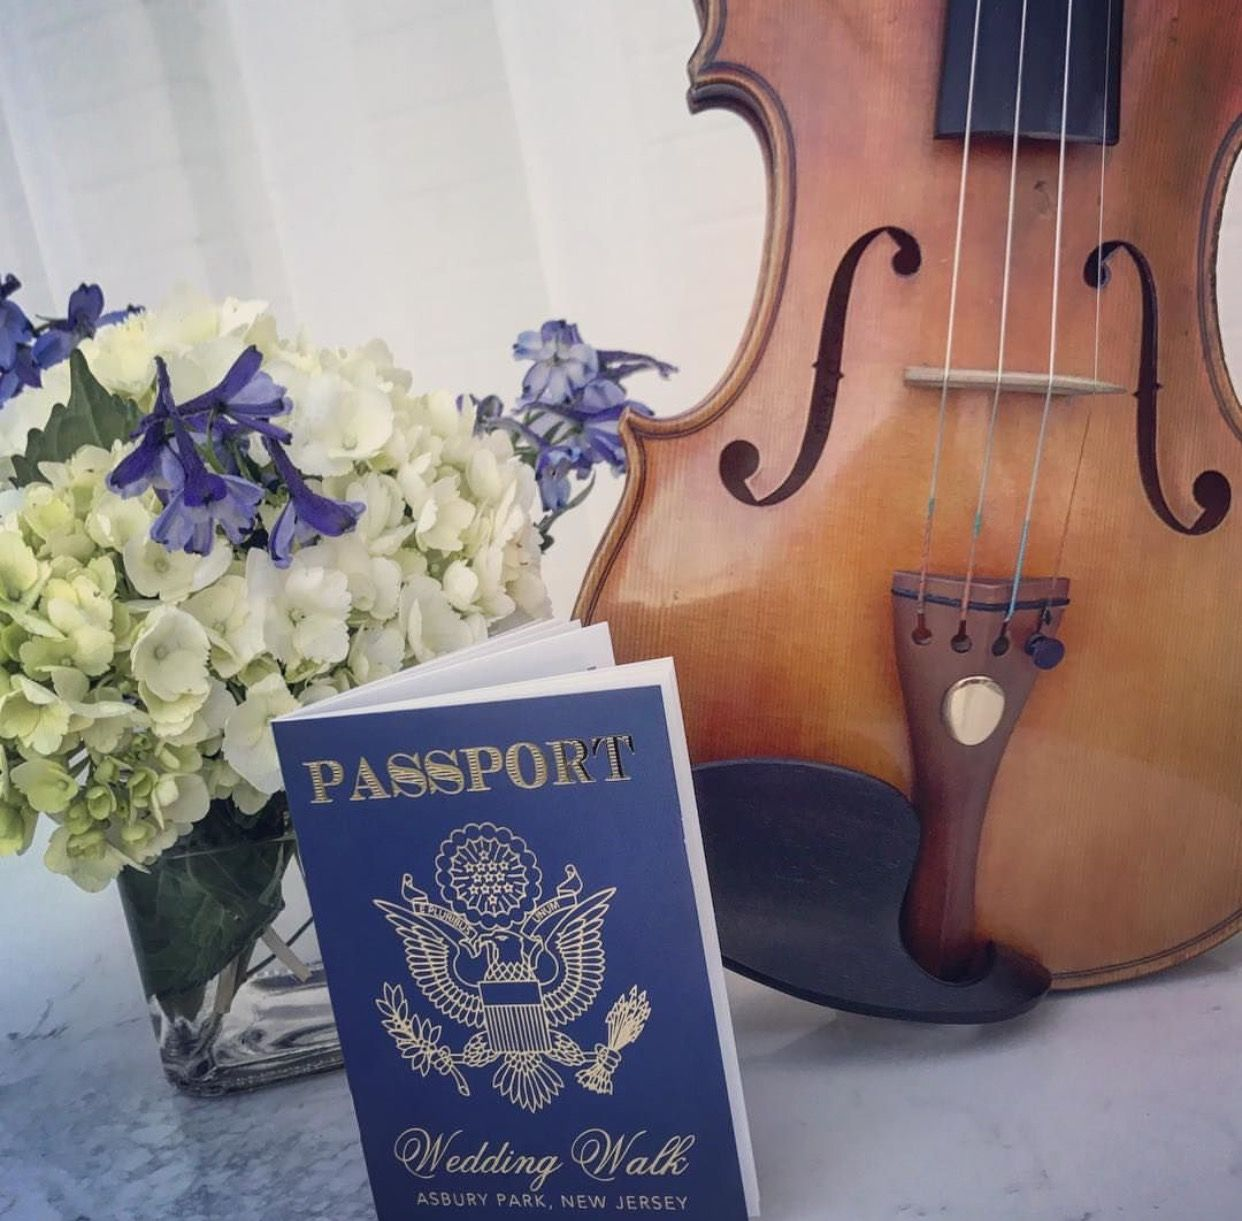 Pin on The Adventures of Sue's Violin